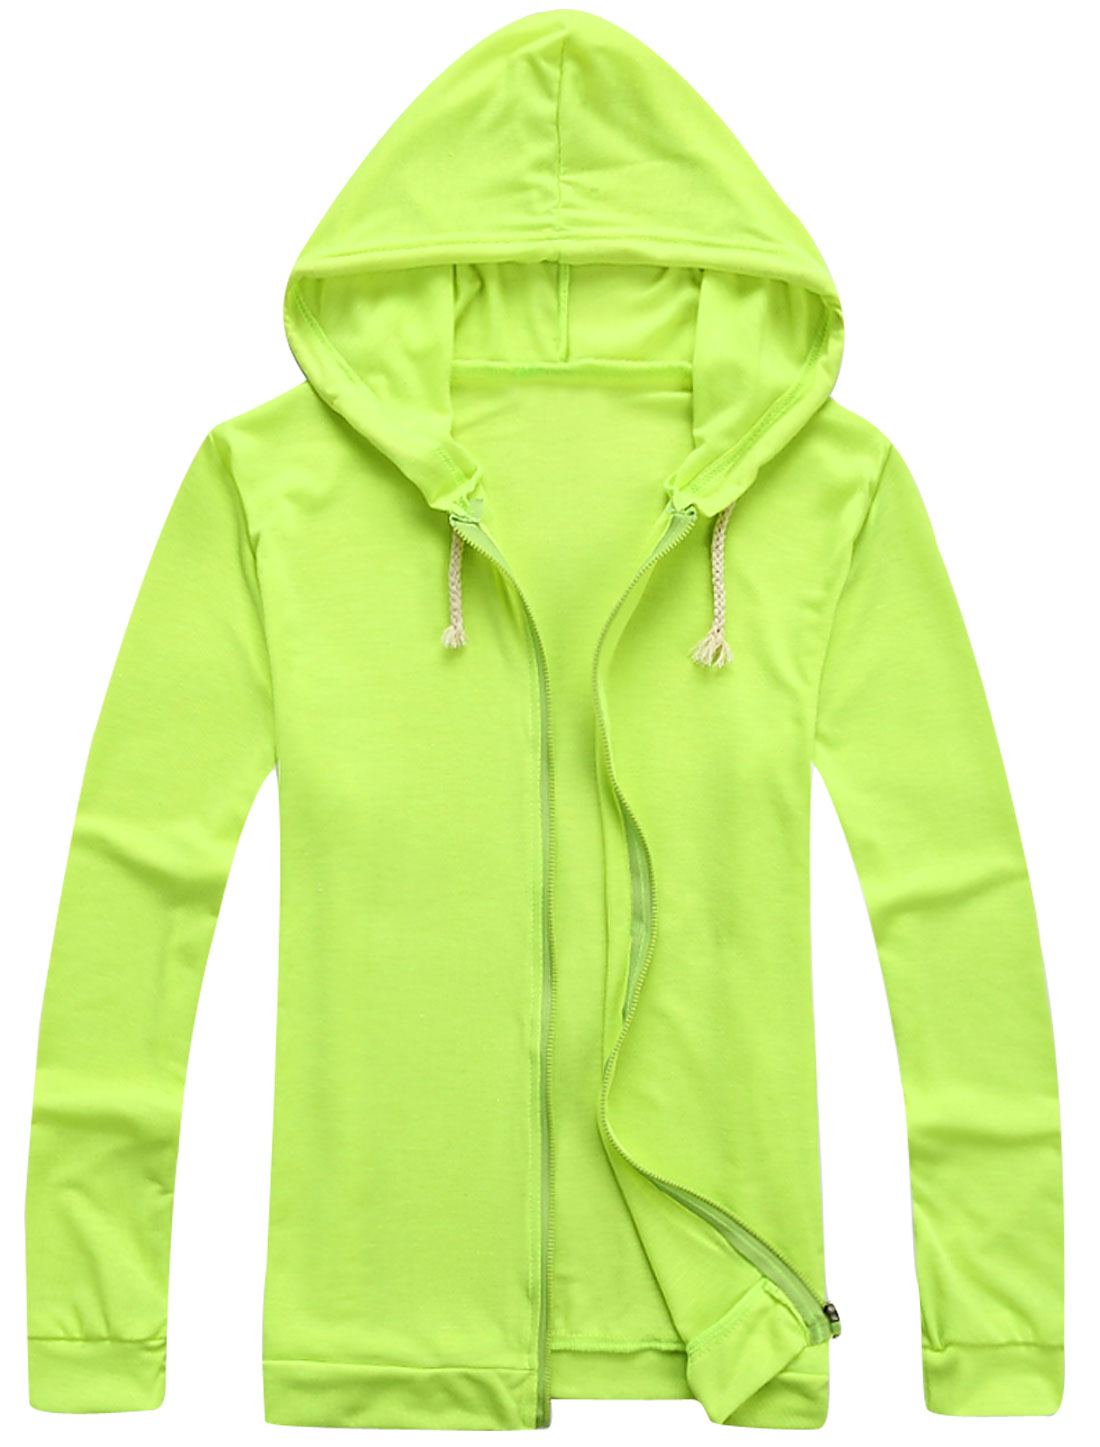 Long-Sleeved Full Zip Soft Fashion Thin Hoodie for Men Lime Yellow M